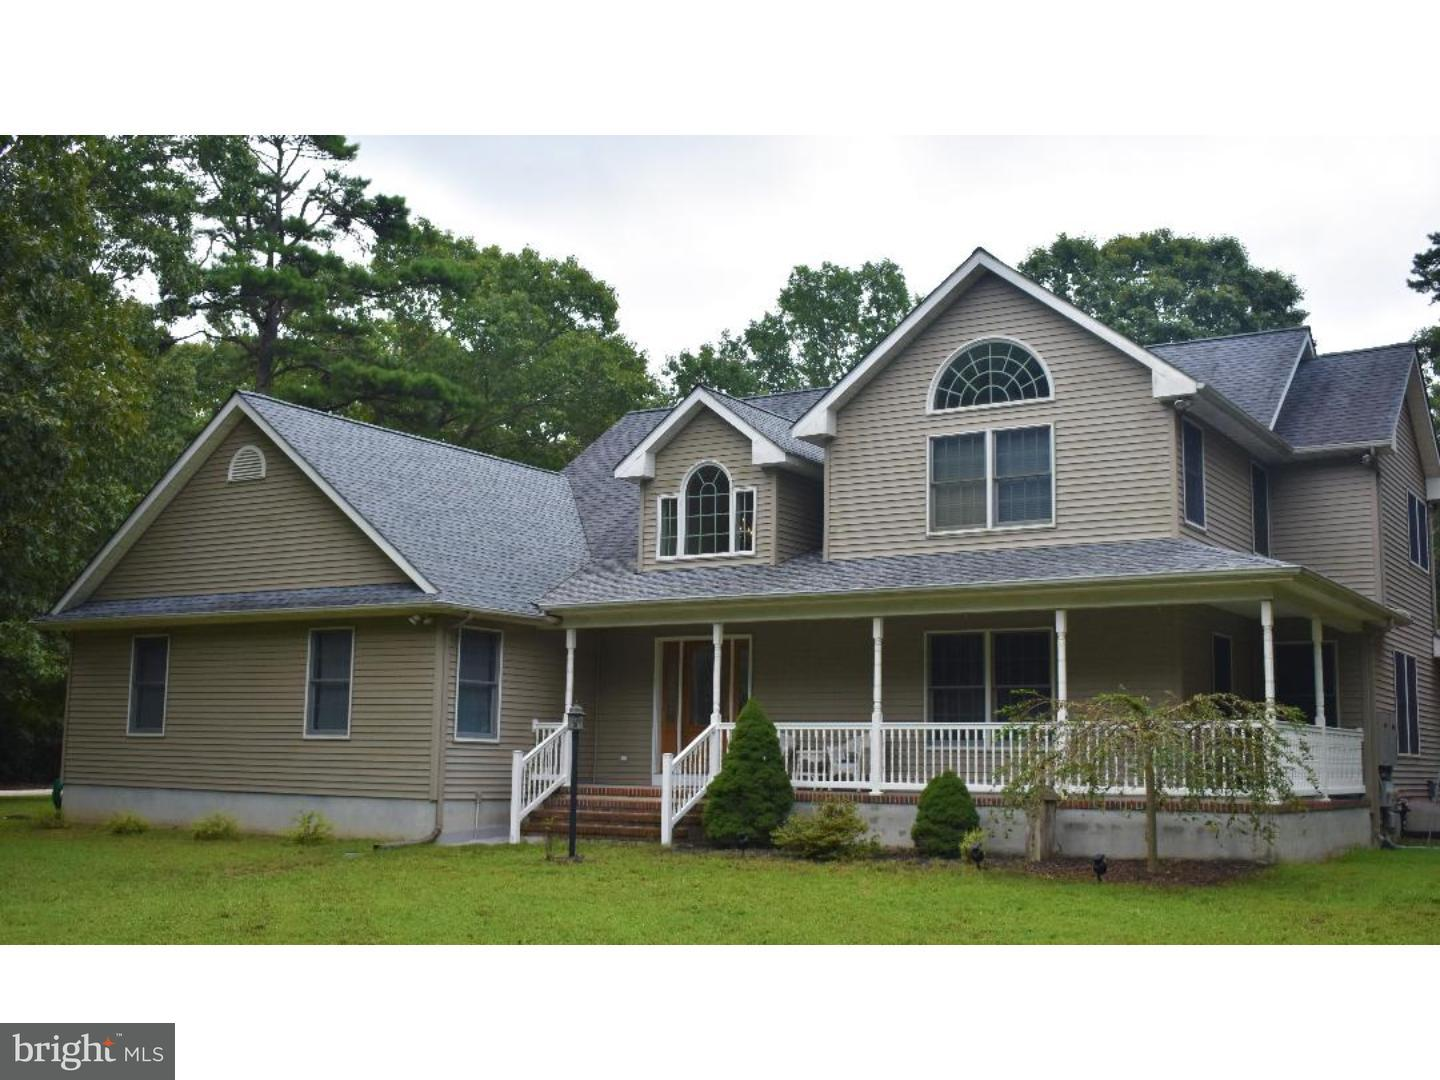 Single Family Home for Sale at 174 WATSONS MILL Road Alloway, New Jersey 08318 United States